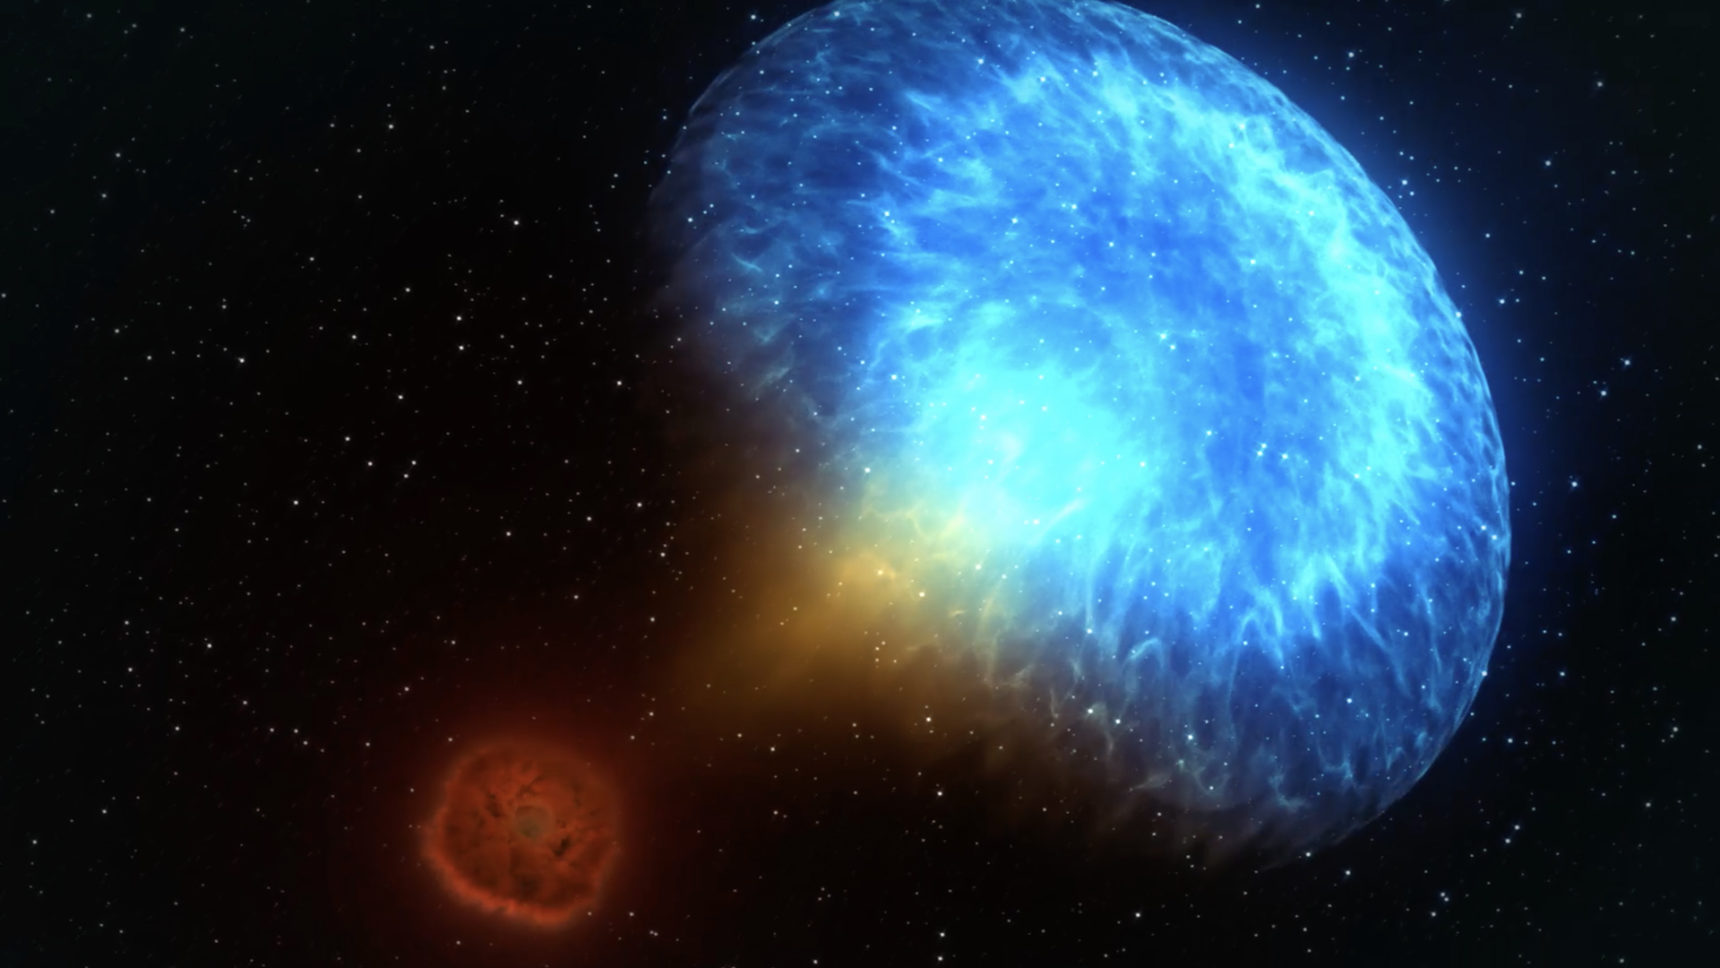 Colliding neutron stars seen by gravity waves and optical telescopes